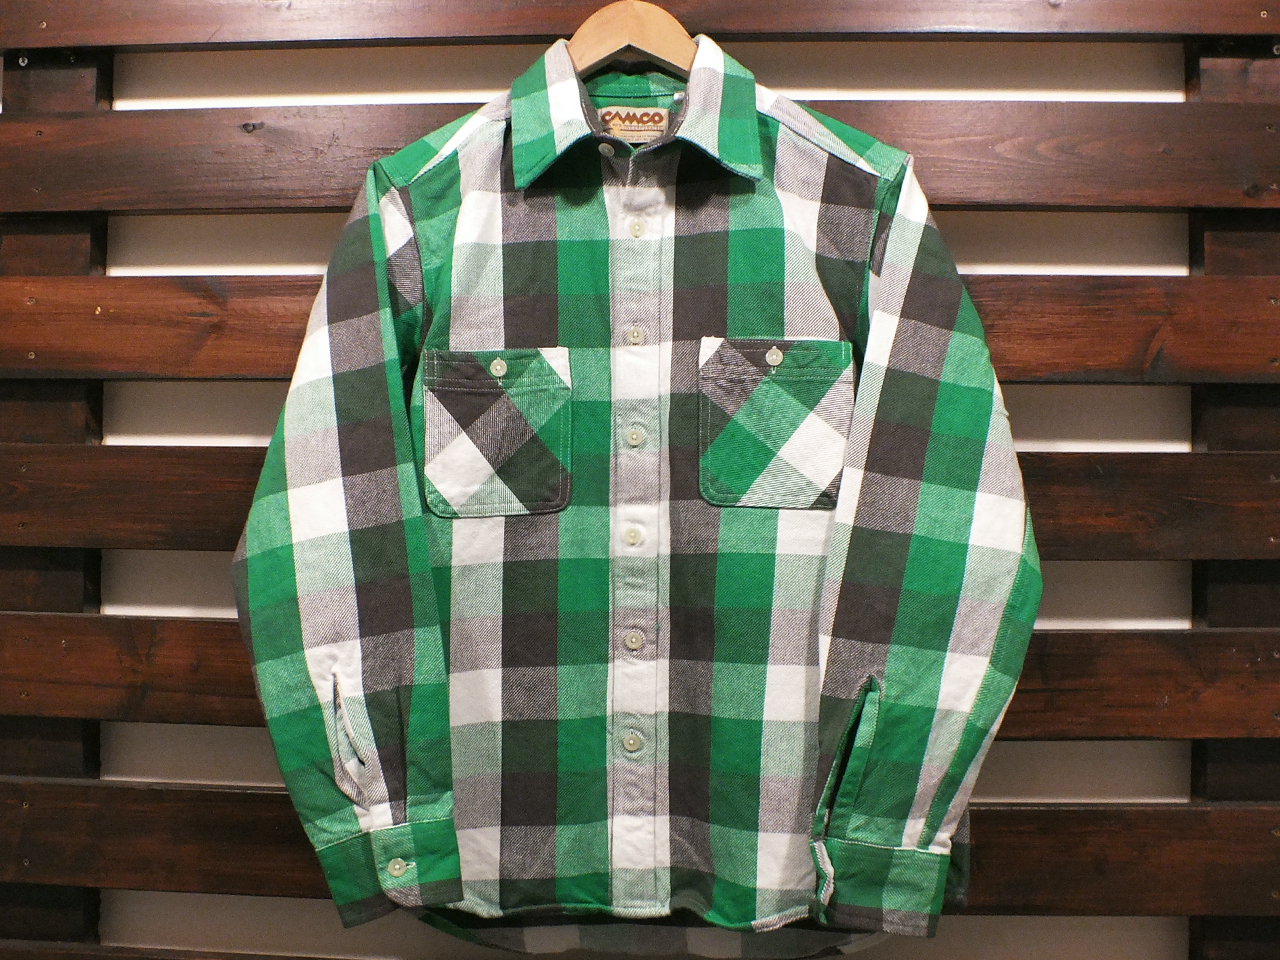 CAMCO HEAVY WEIGHT FLANNEL SHIRTS #21-E